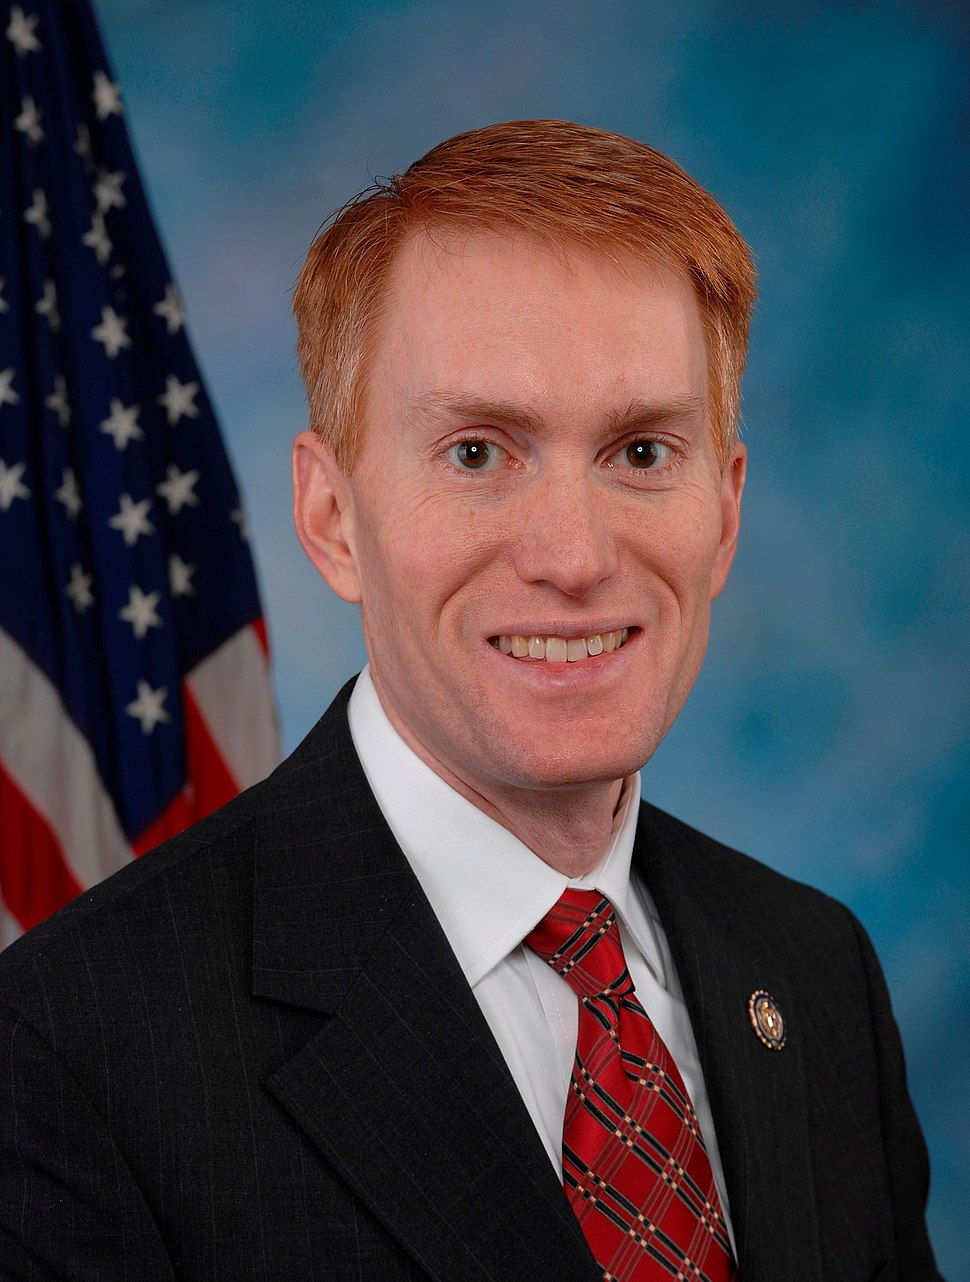 James Lankford, Official Portrait, 112th Congress